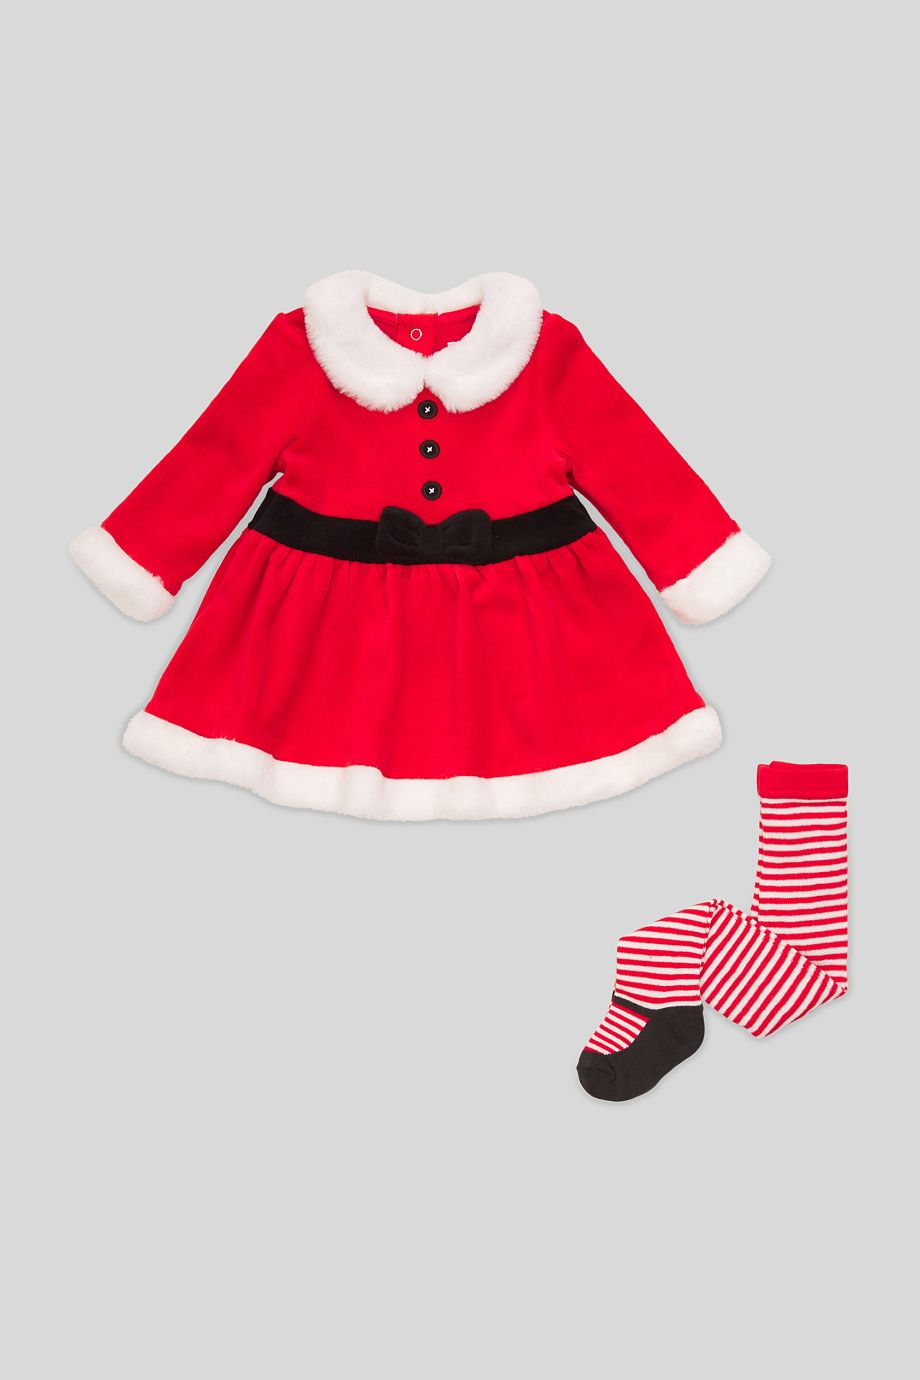 New Le Top Toddler Red Velour Santa Dress Holiday 2T 4T